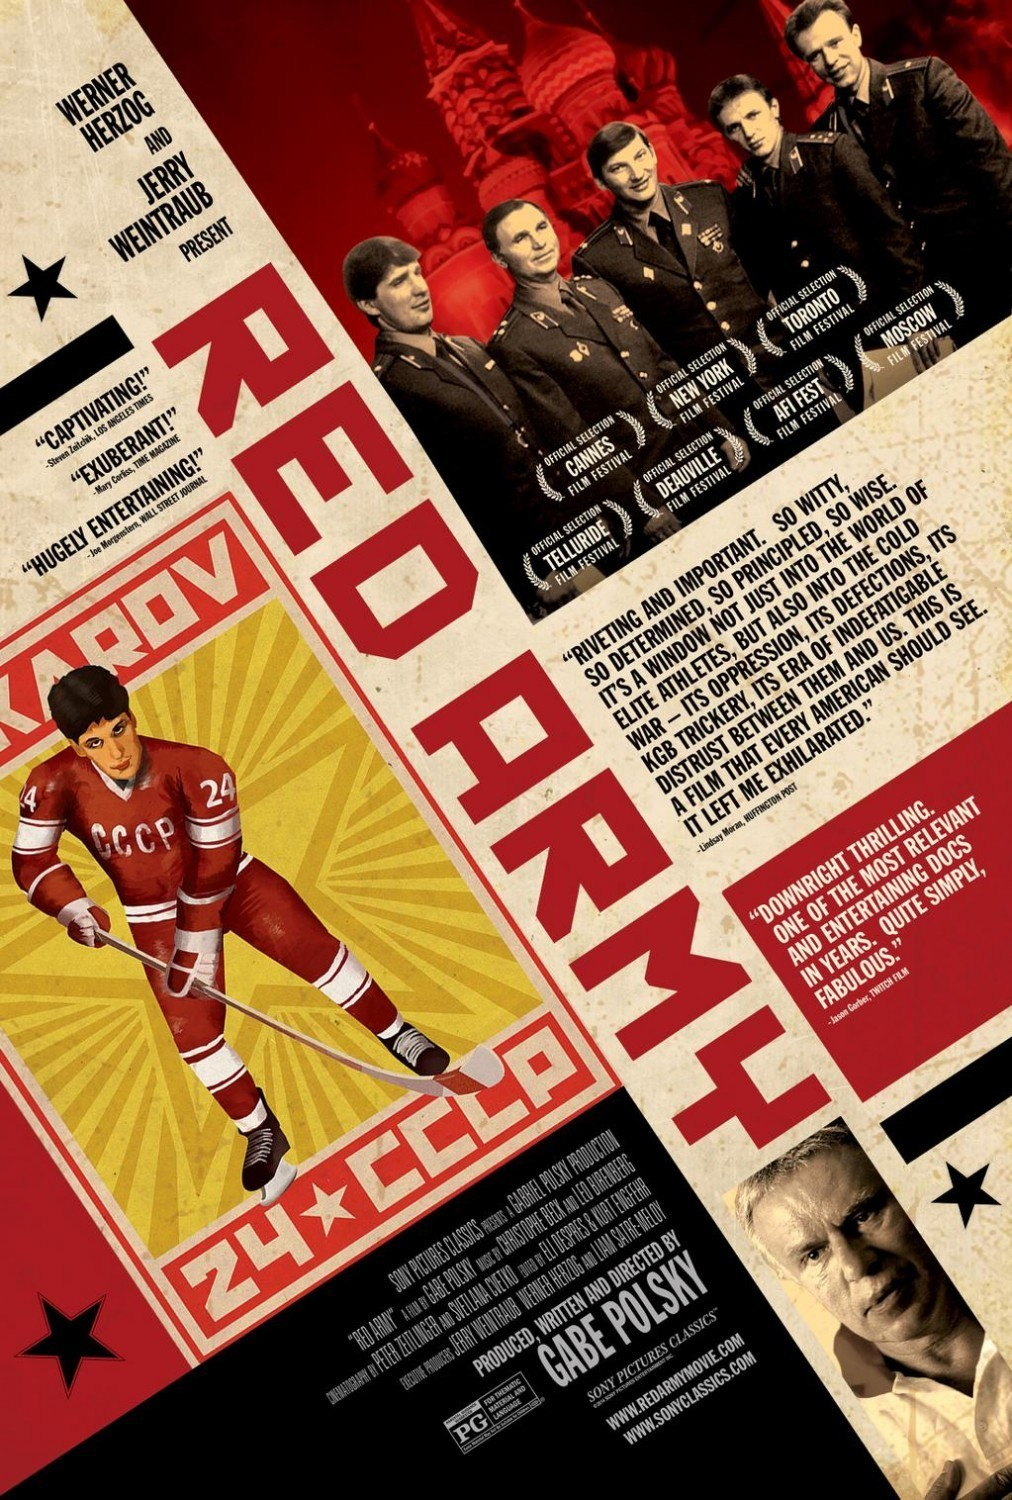 Image Red Army